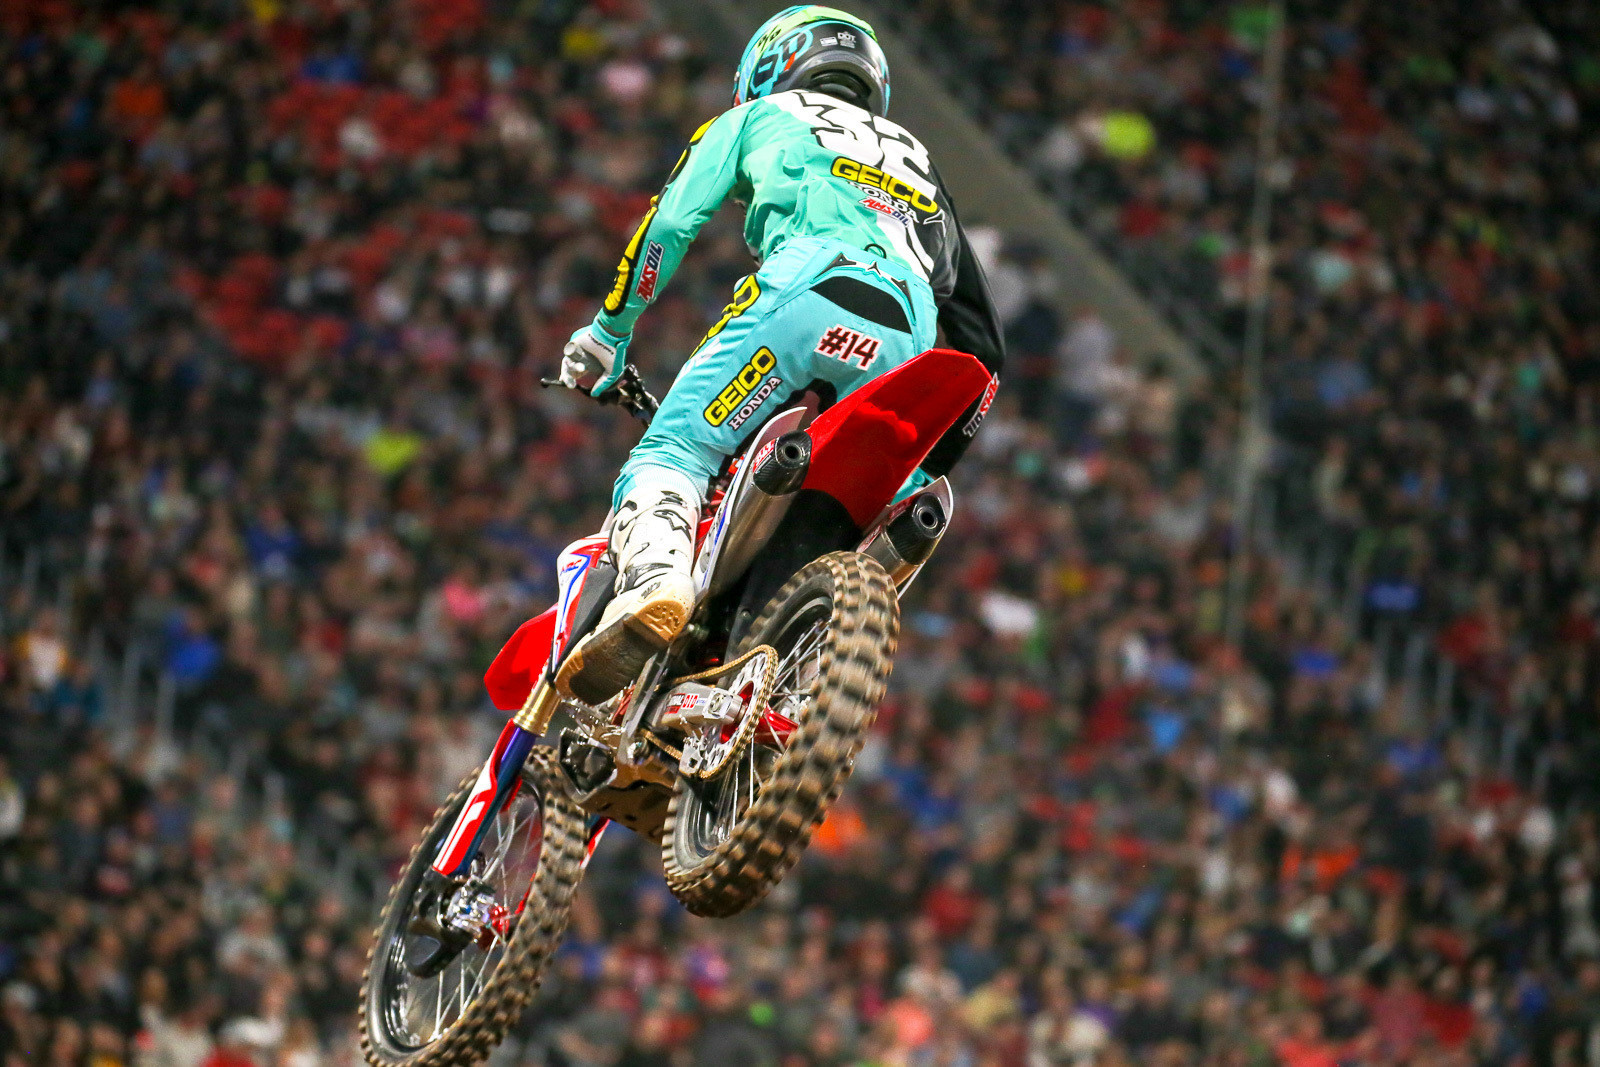 Christian Craig to Fill In at Team Honda HRC for Remainder of Supercross Season